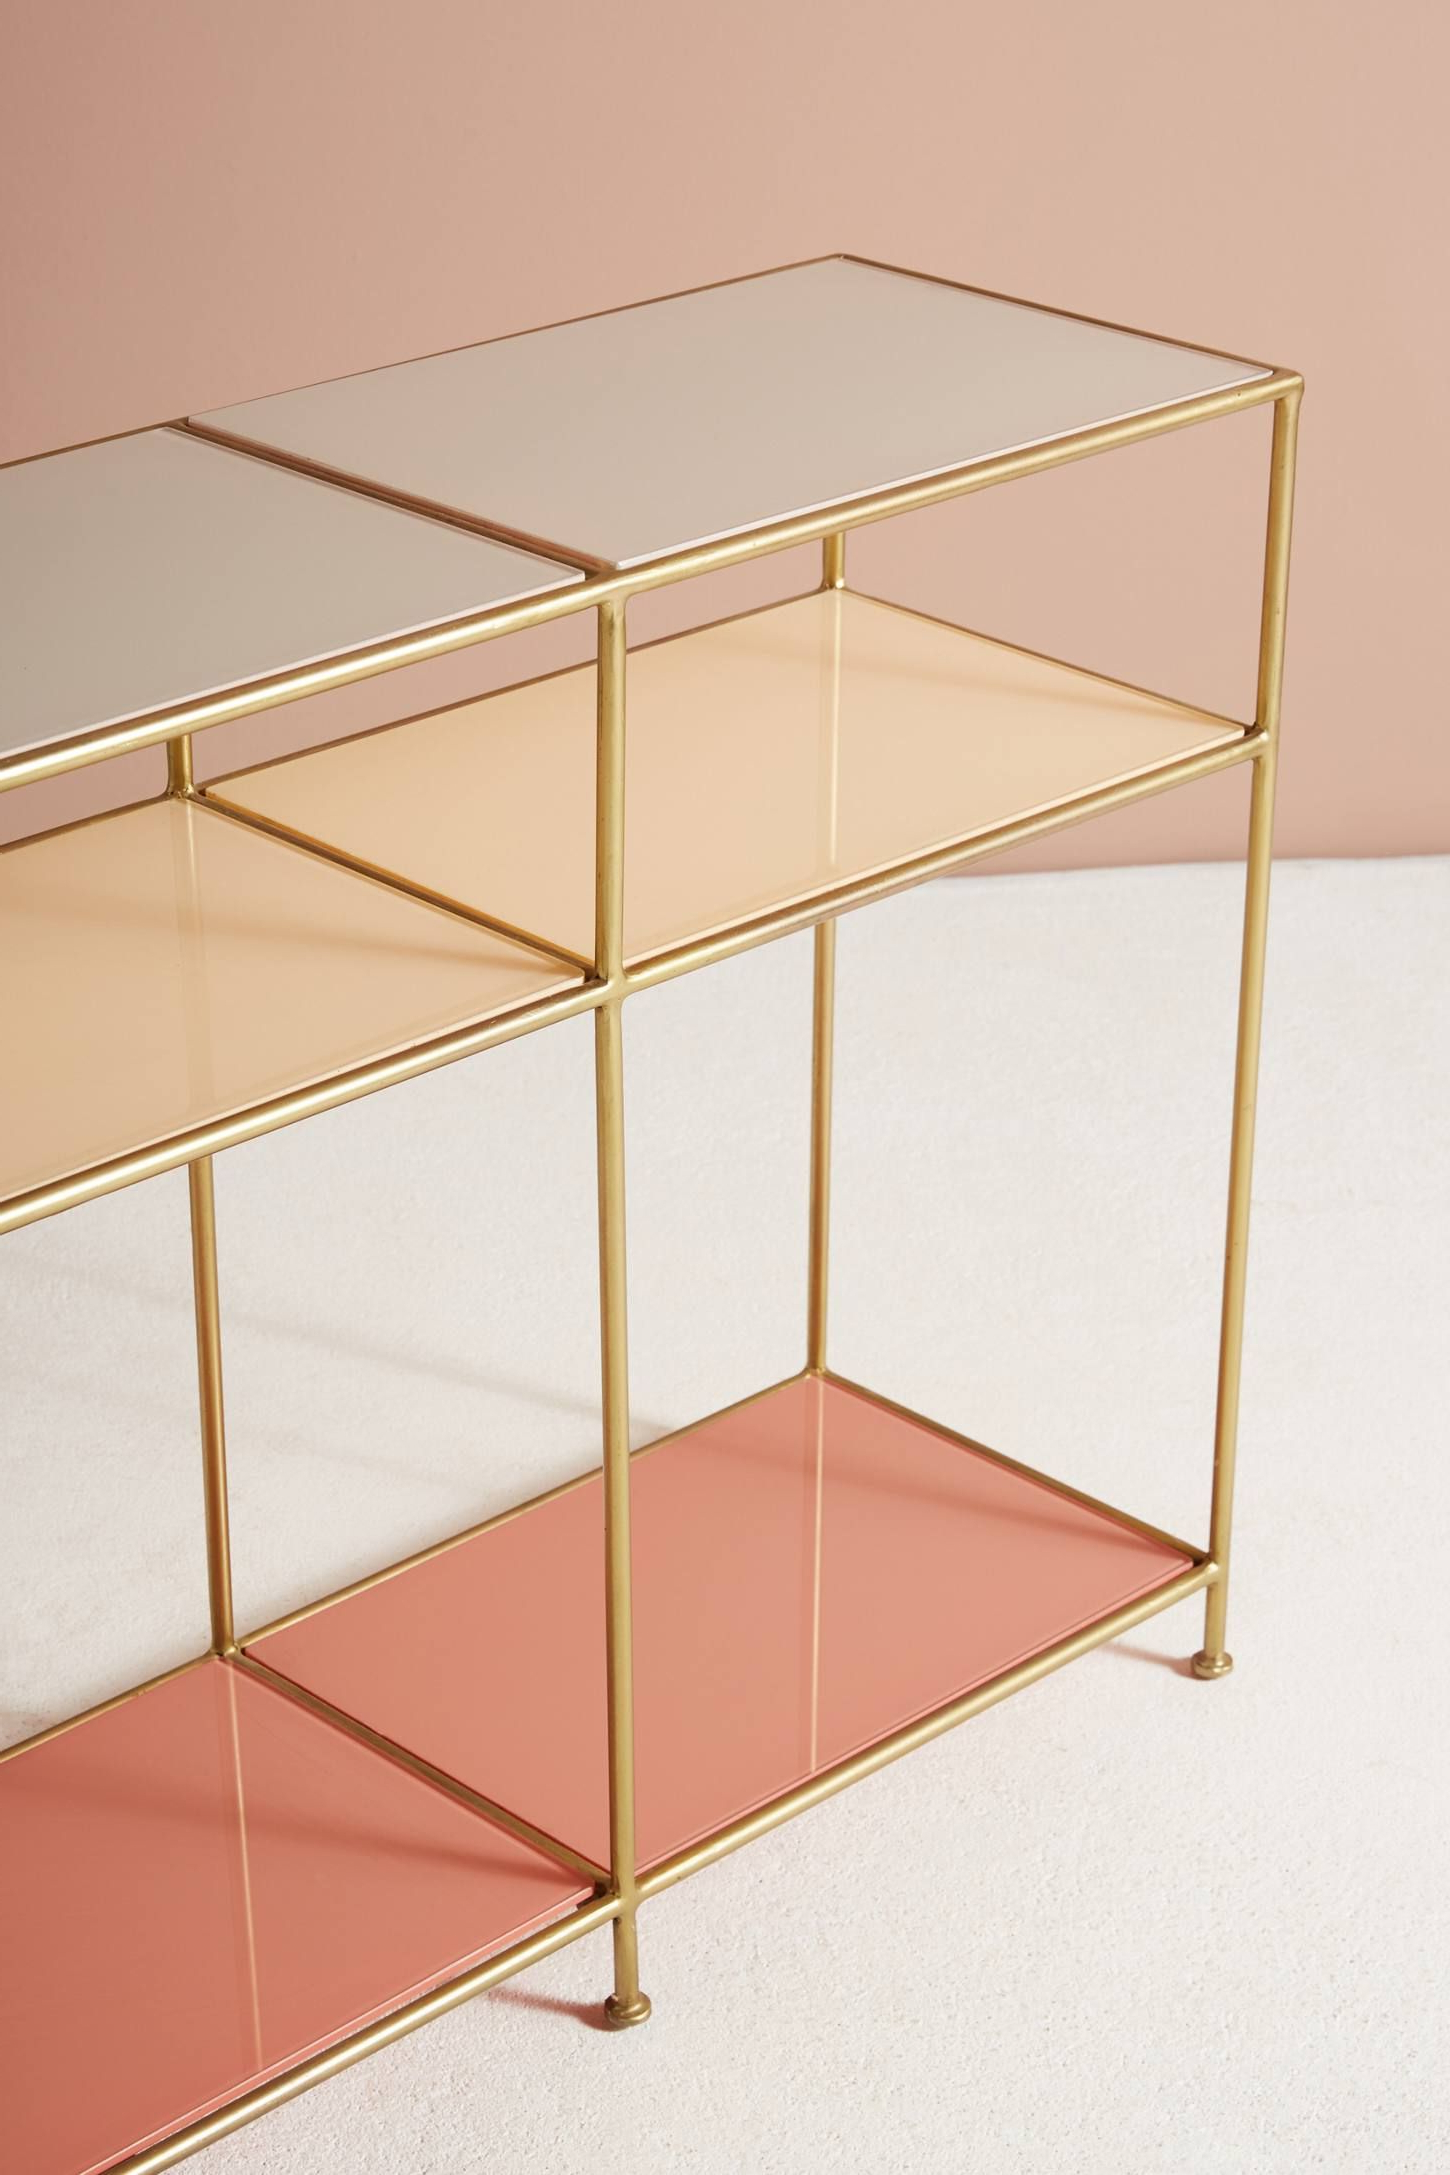 Console Tables, Consoles And Credenza Pertaining To Elke Glass Console Tables With Brass Base (View 15 of 20)